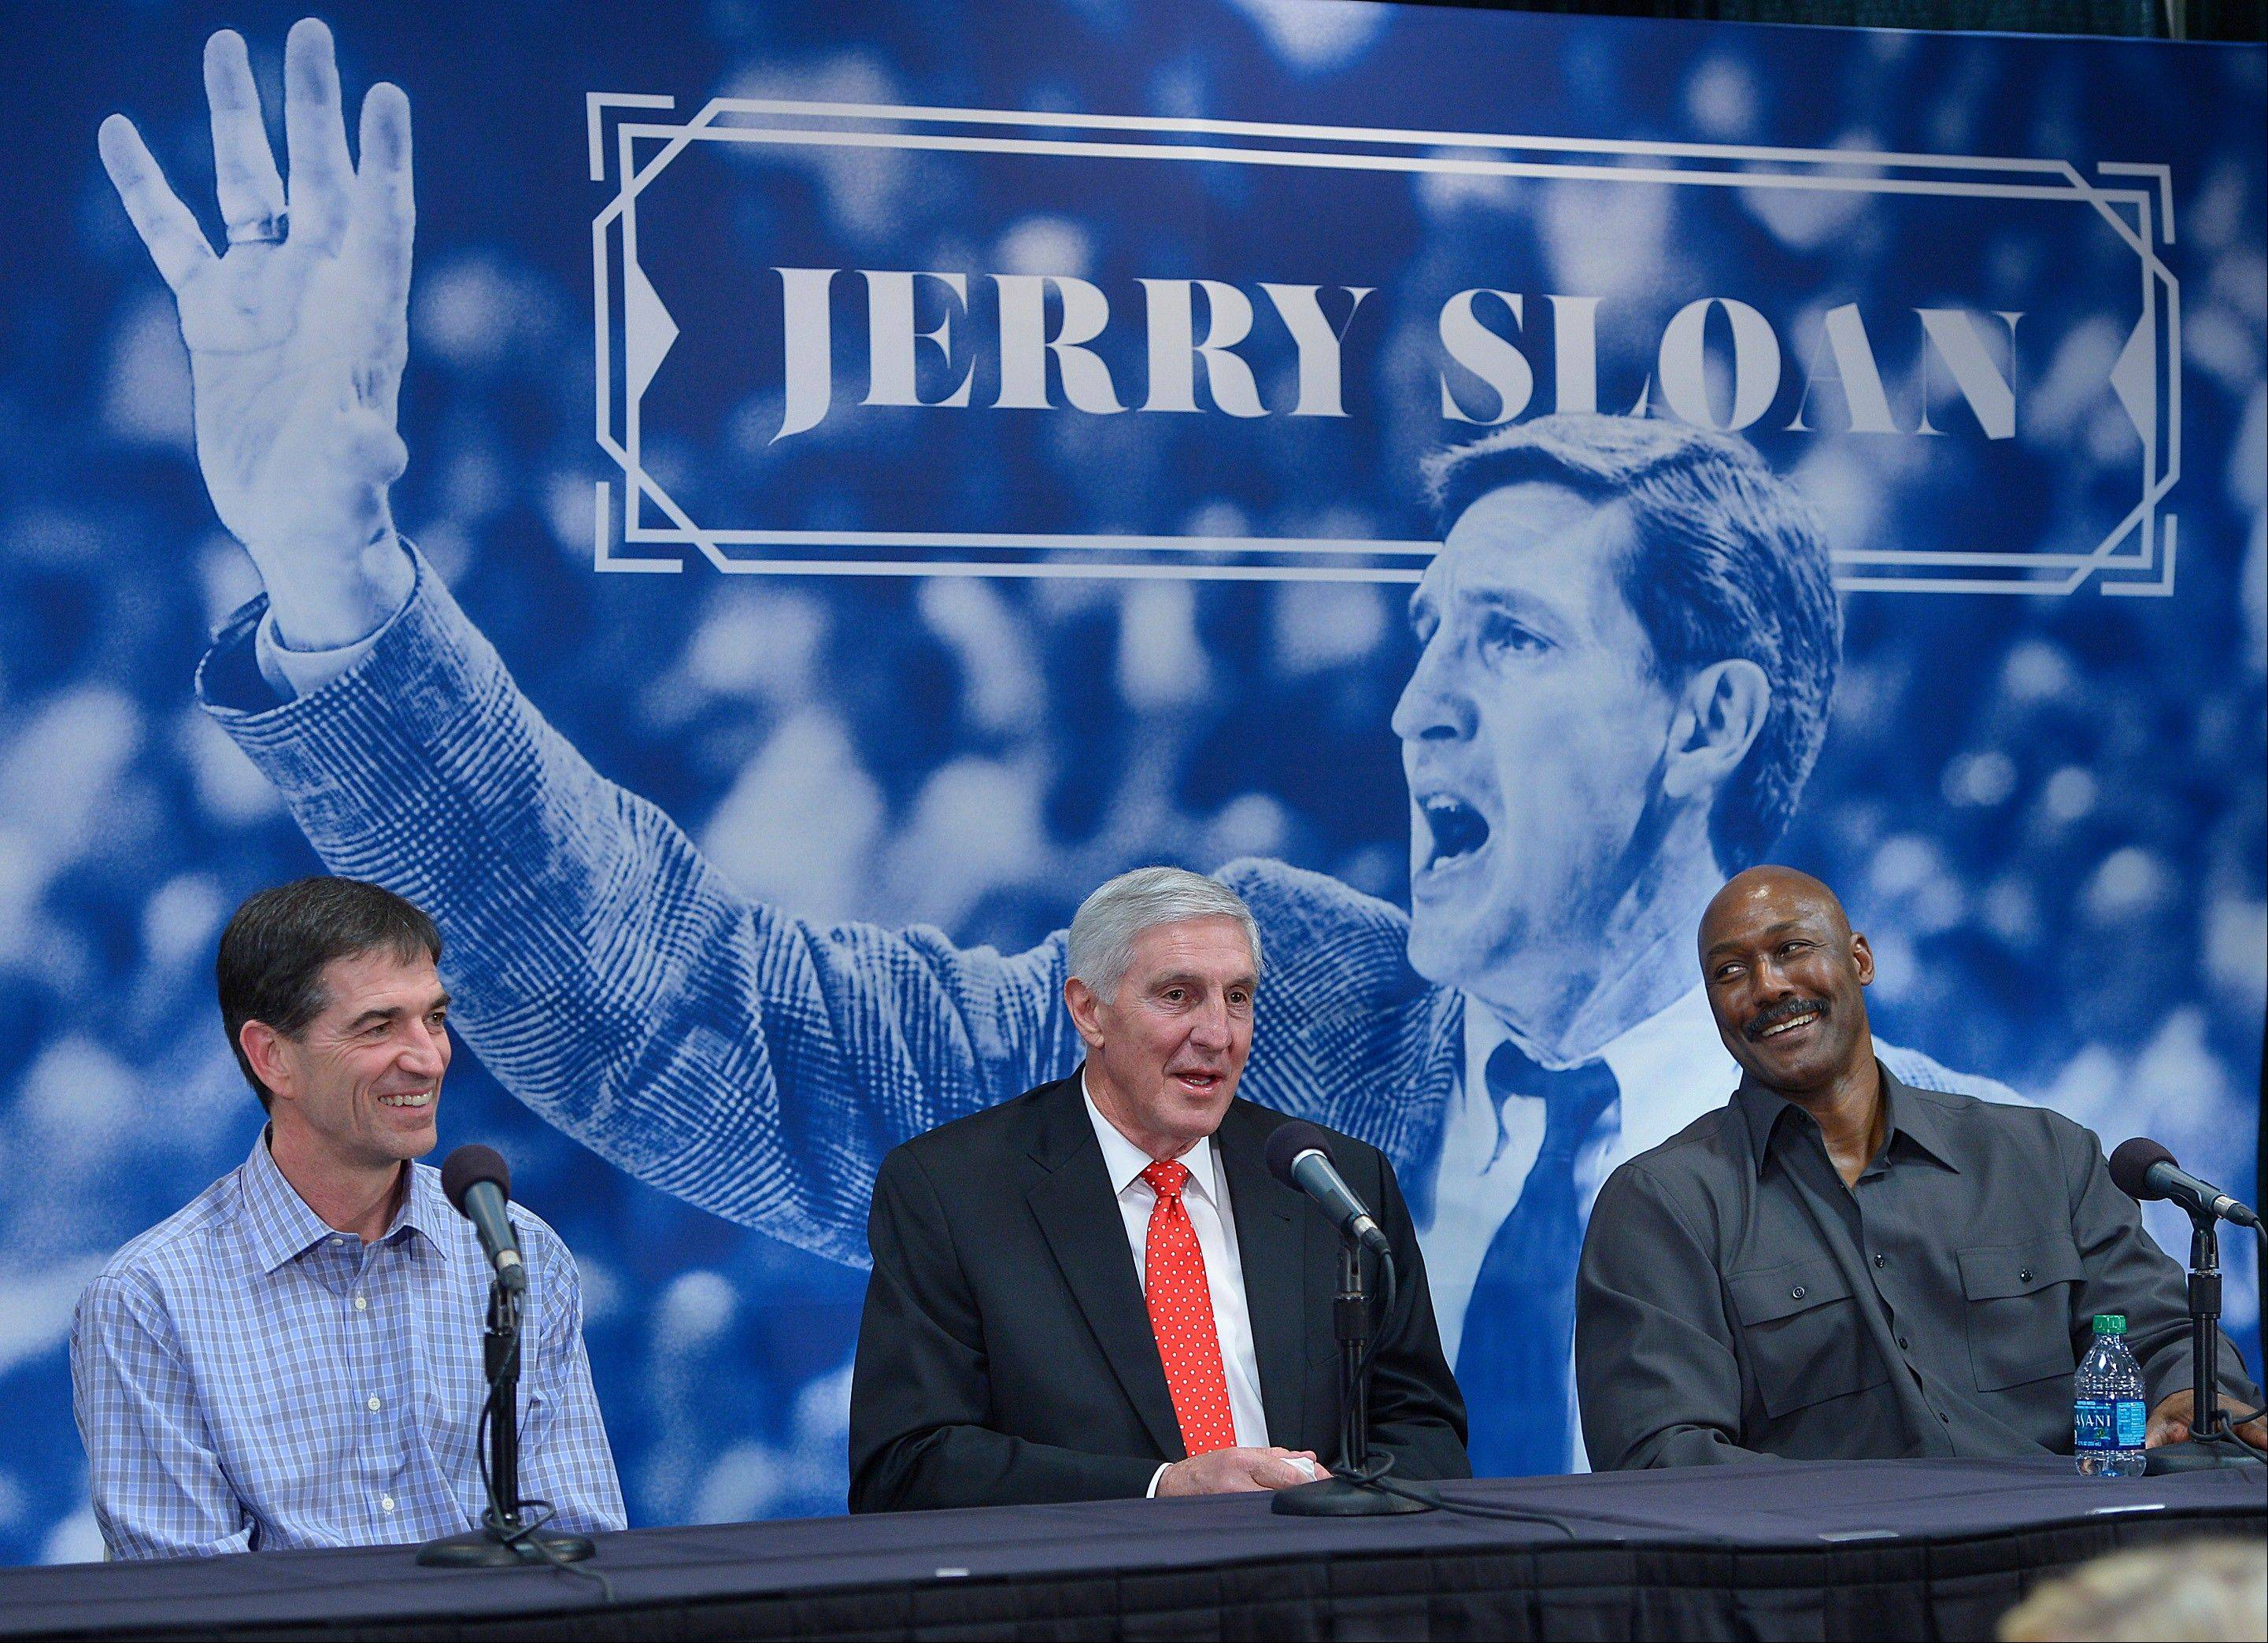 John Stockton, left, and Karl Malone laugh during a news conference to honor former Utah Jazz coach Jerry Sloan on Friday in Salt Lake City.